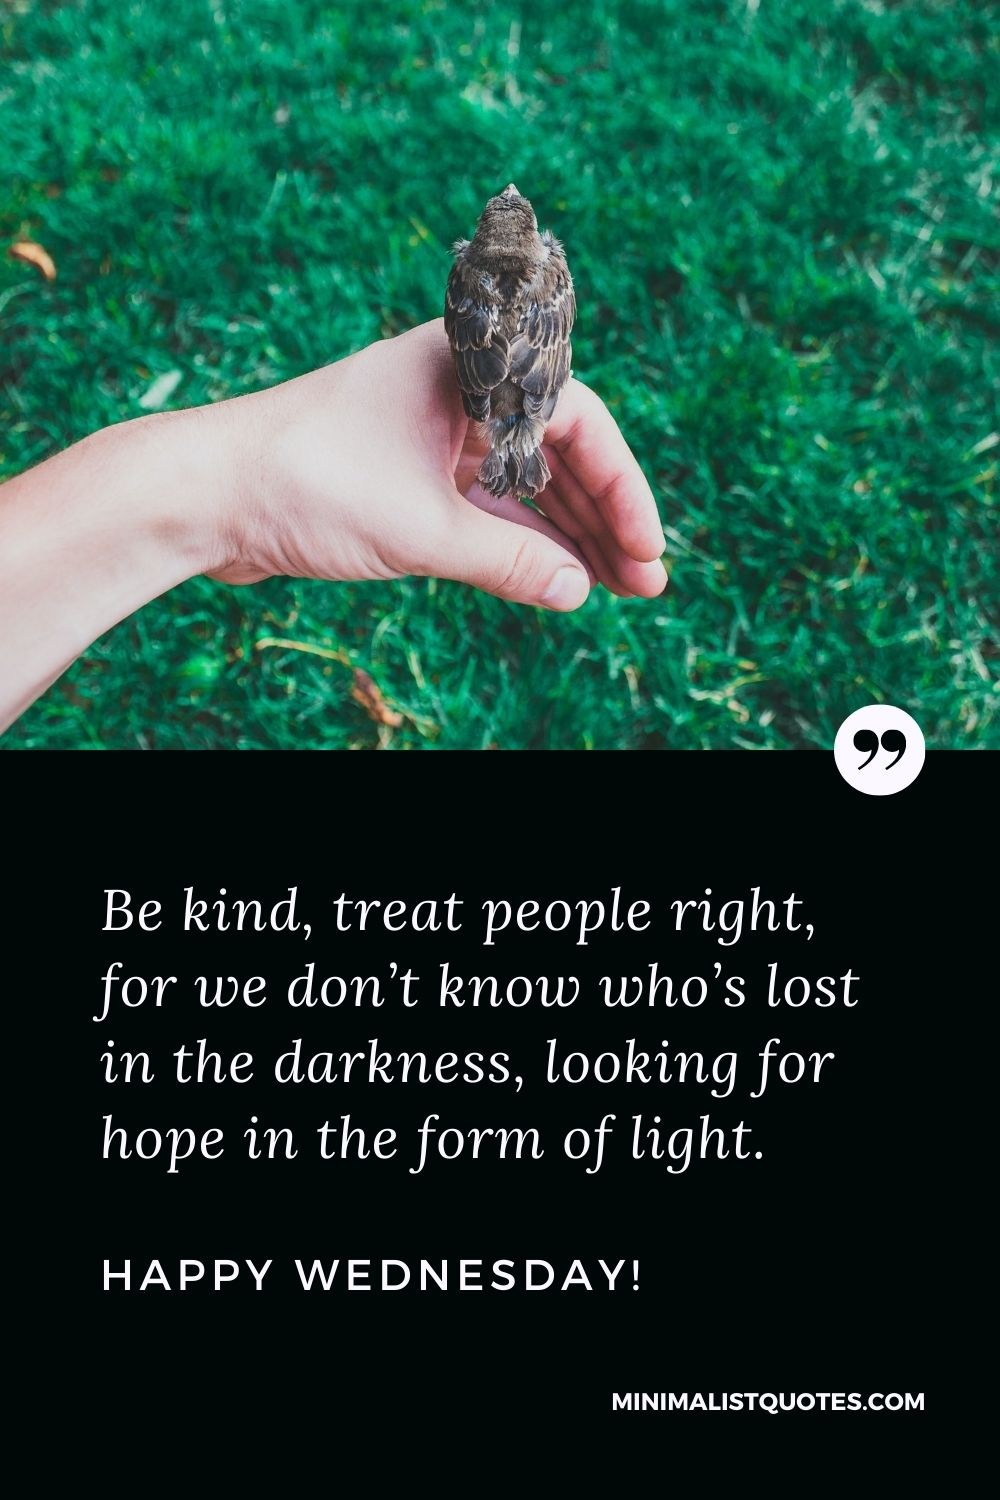 Wednesday Quote, Wish & Message With Image: Be kind, treat people right, for we don't know who's lost in the darkness, looking for hope in the form of light. Happy Wednesday!